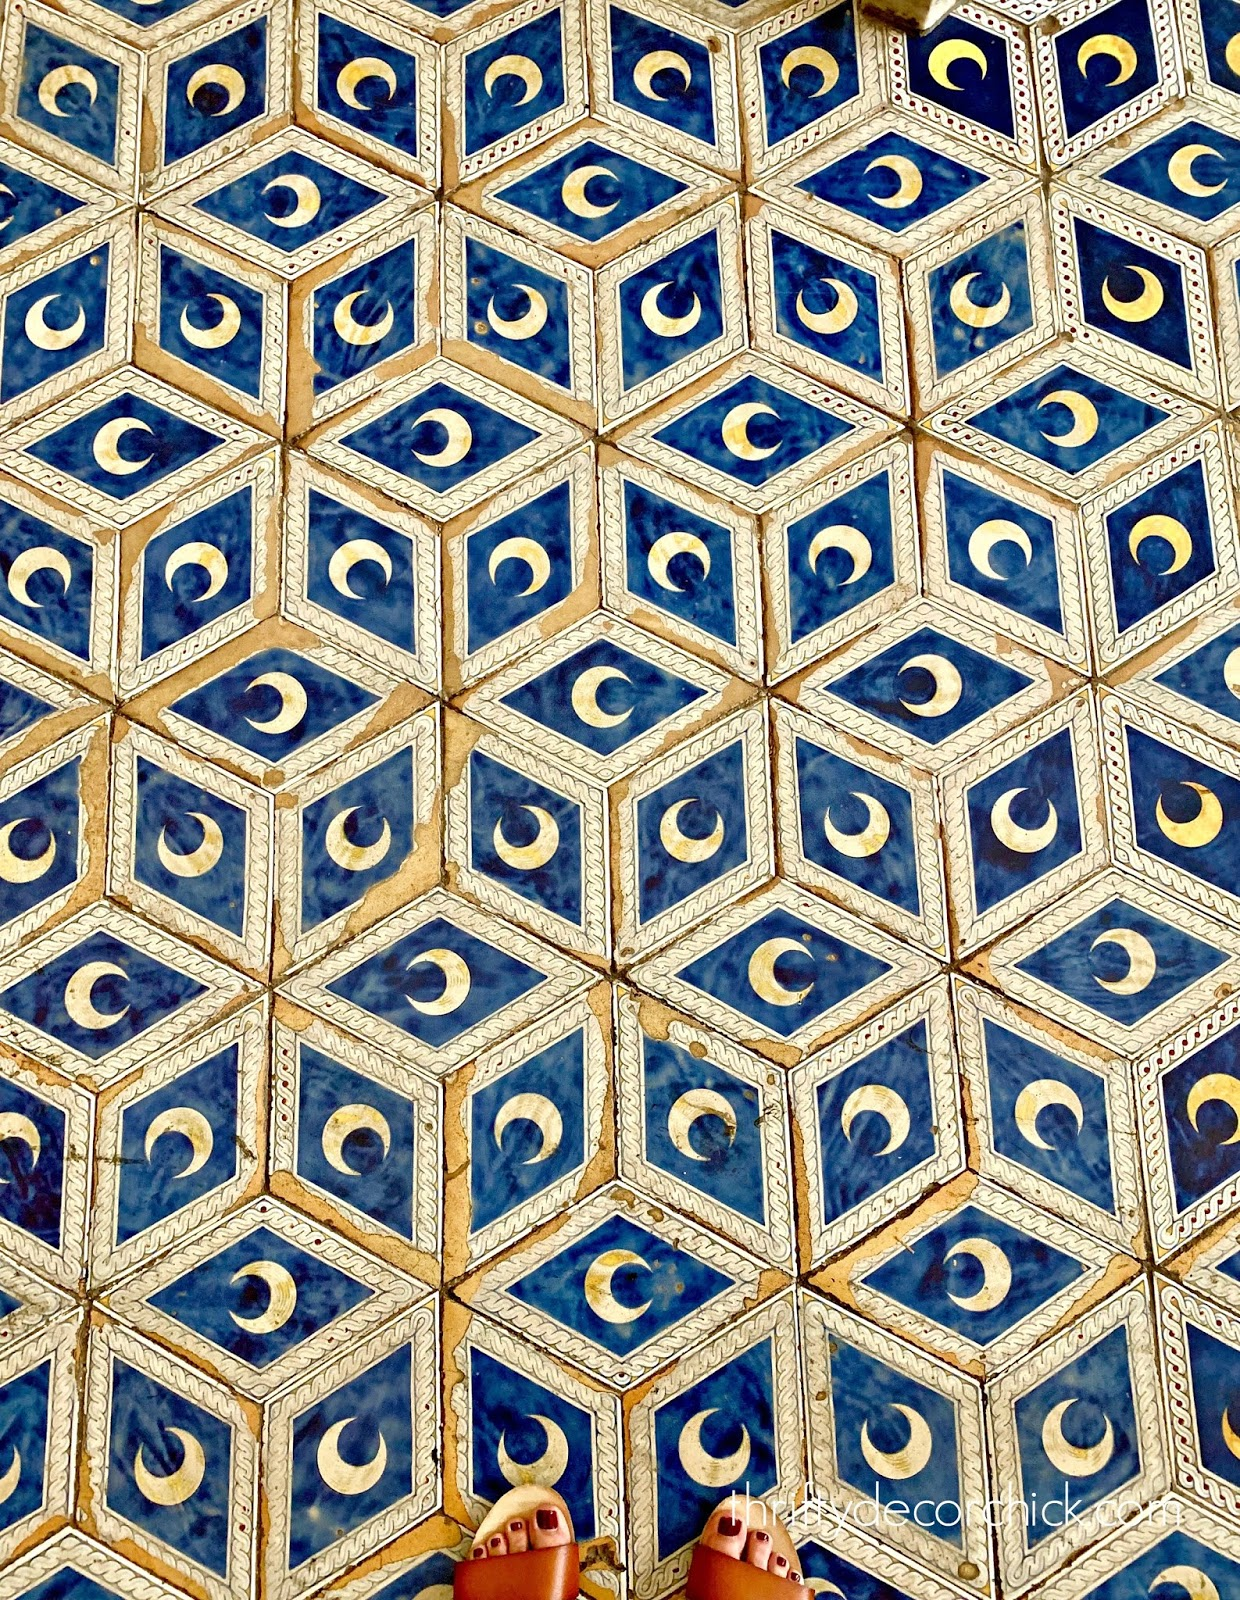 Moon floor tile in Siena